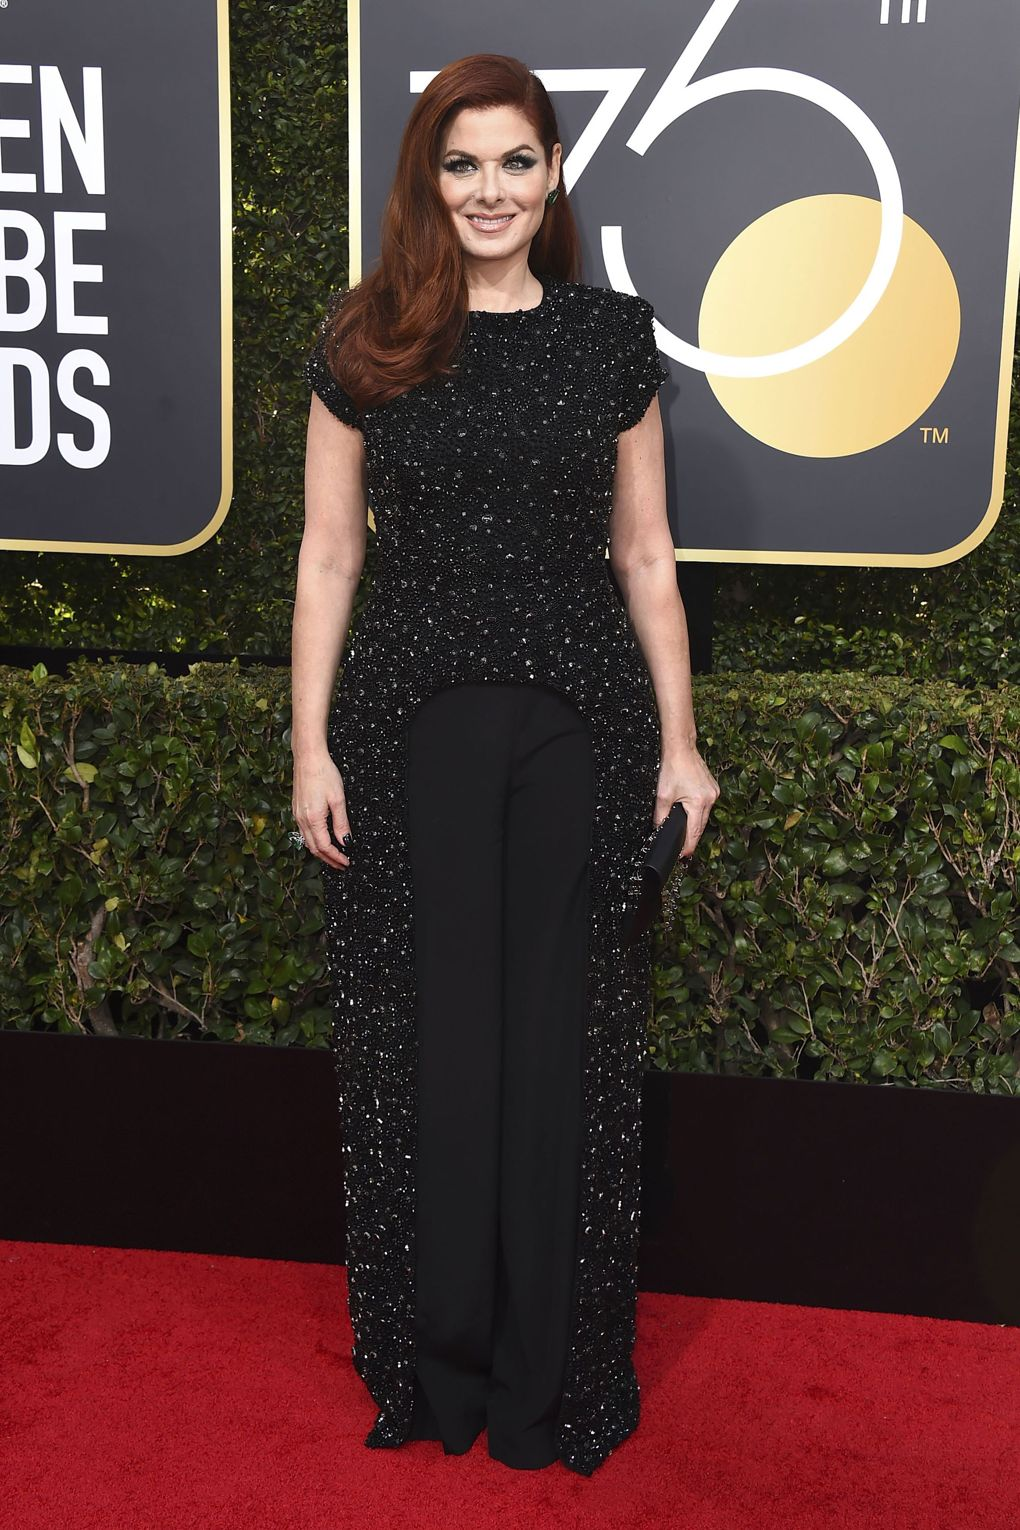 golden globes 2019 - photo #24